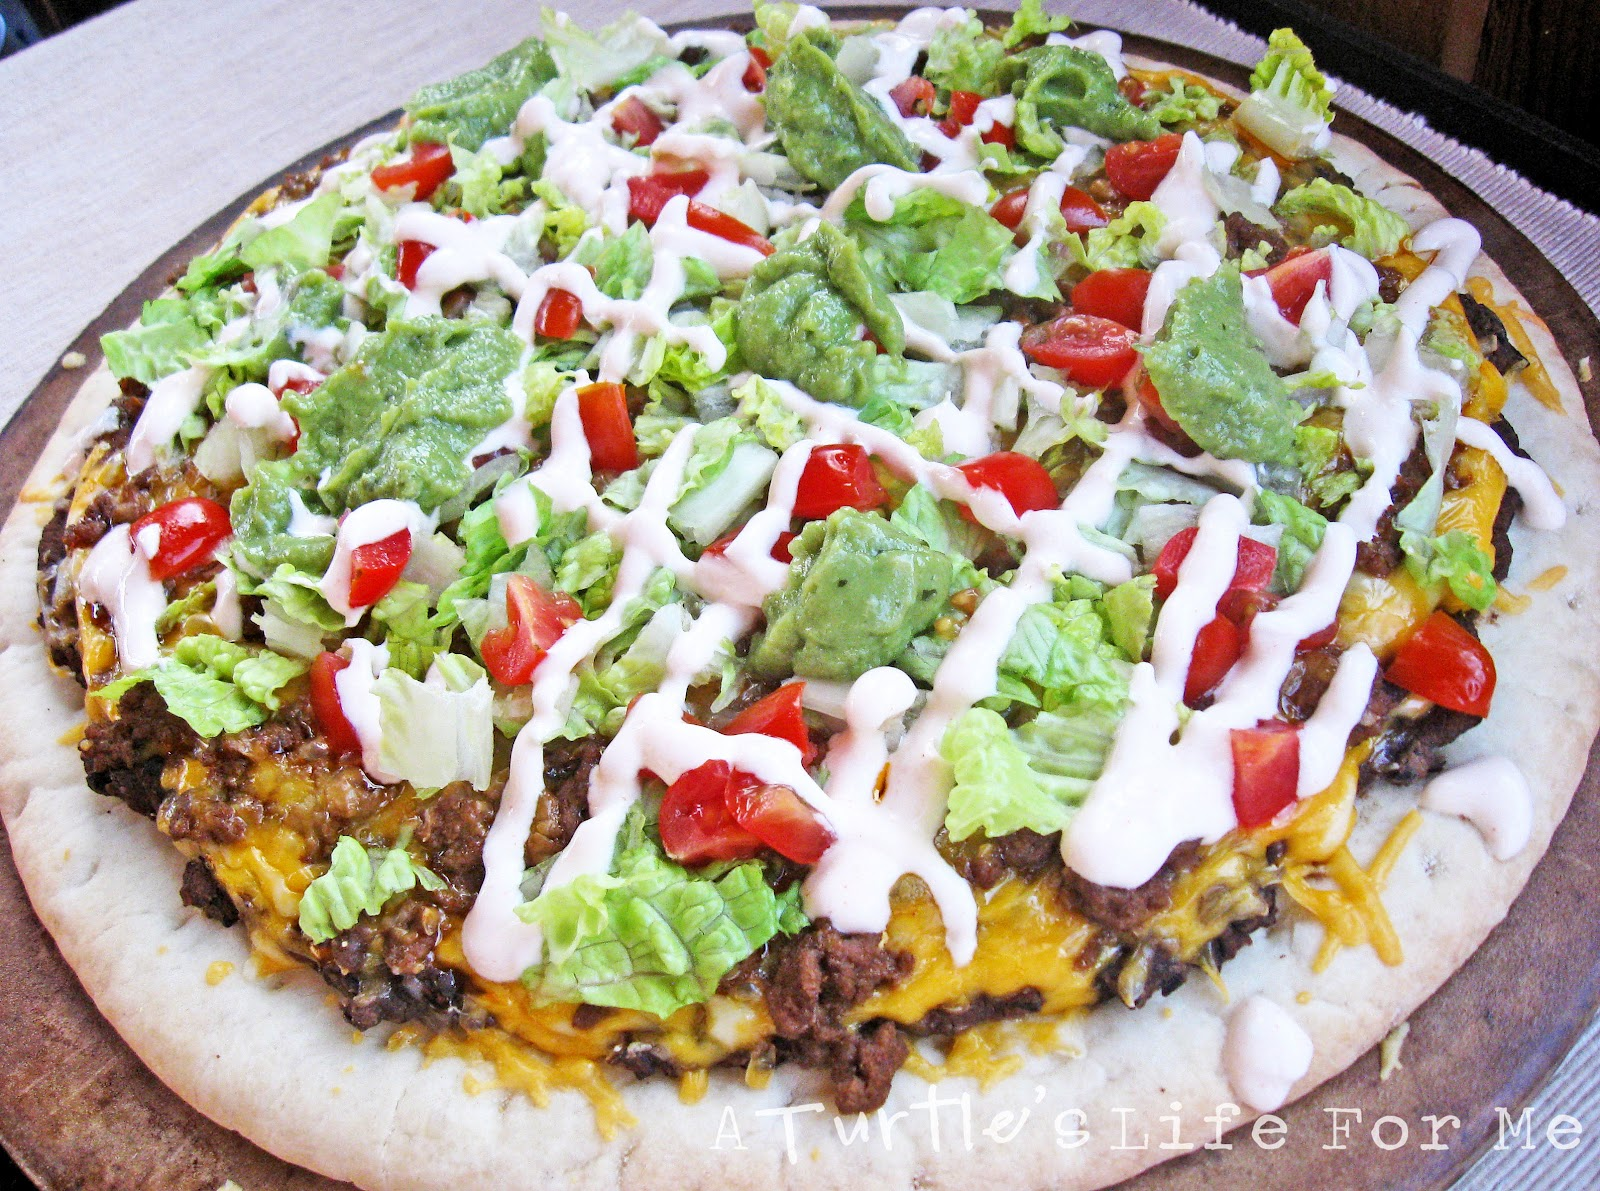 Taco Pizza - A Turtle's Life for Me